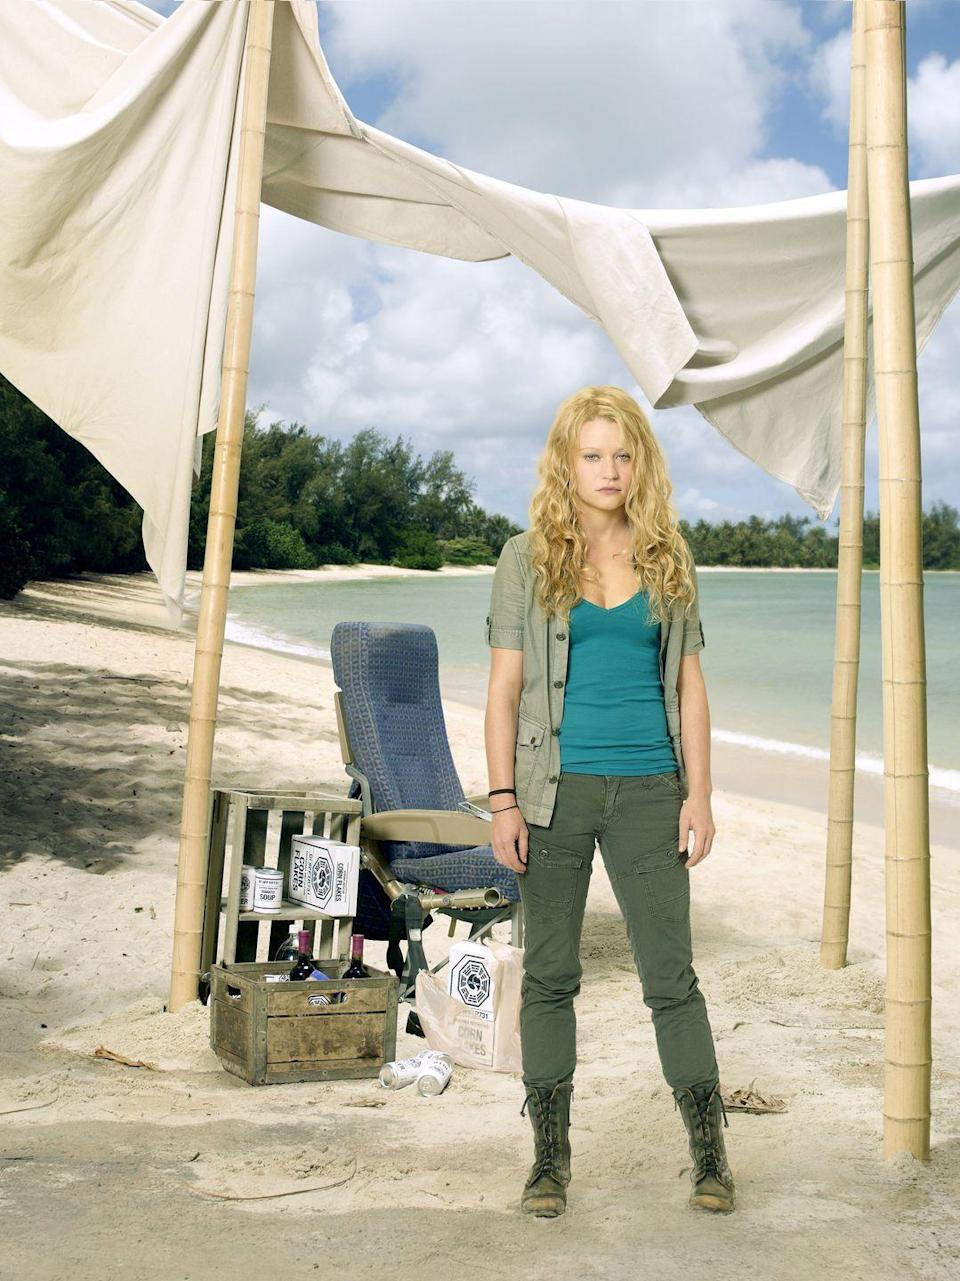 <p>Claire Littleton was pregnant when Oceanic Flight 815 landed on the island, and gave birth while there. She also had a relationship with Charlie.</p>